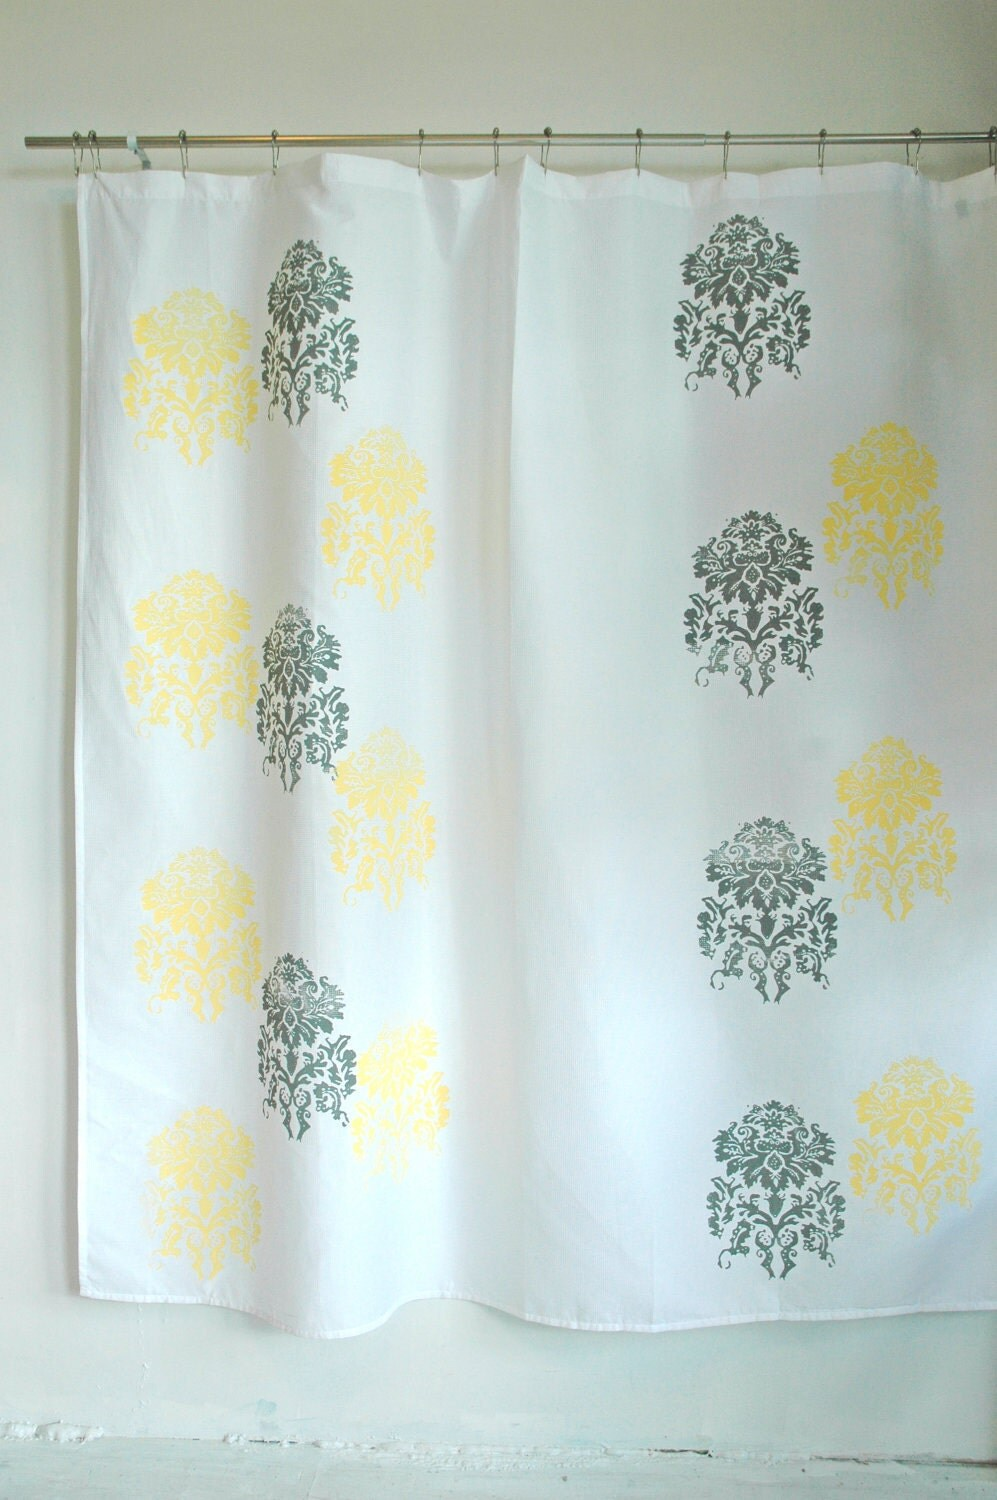 White Shower Curtain With Mantra Print In Yellow By